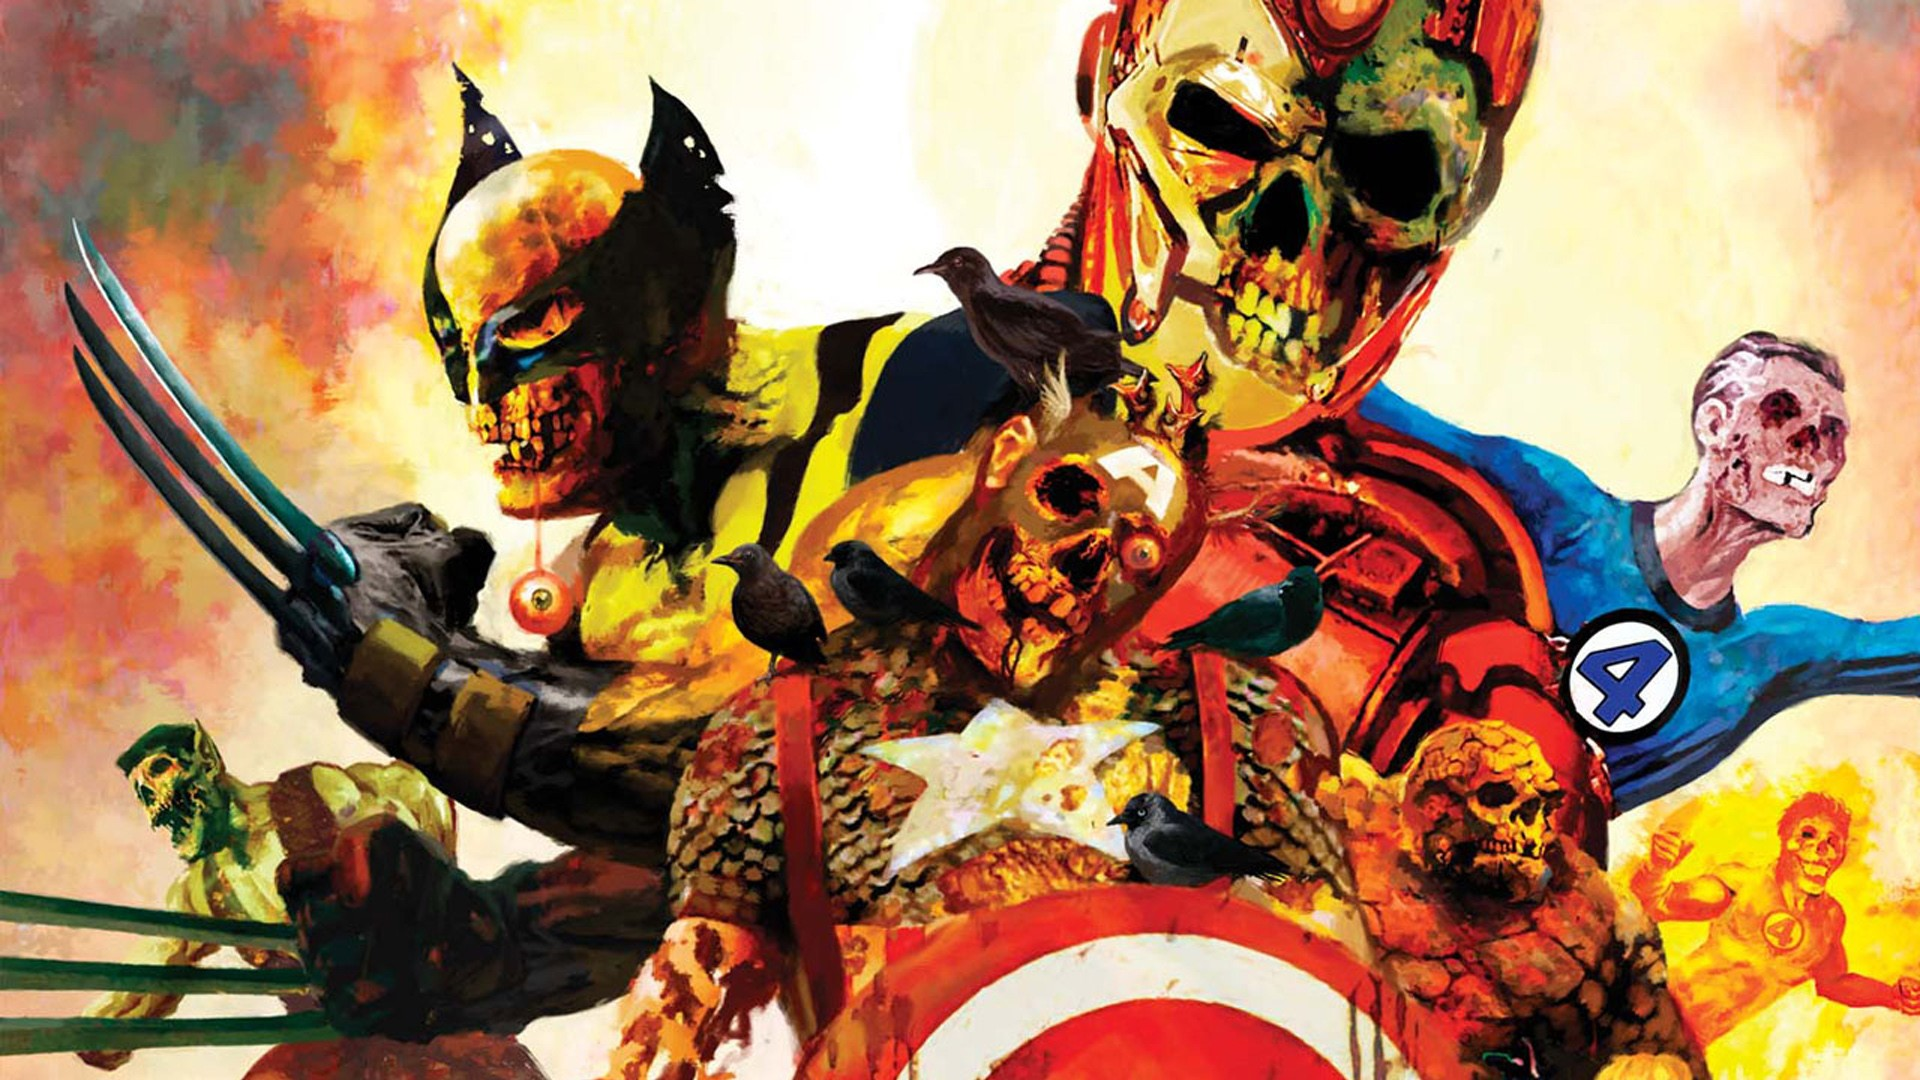 Marvel zombies pic free online sex image